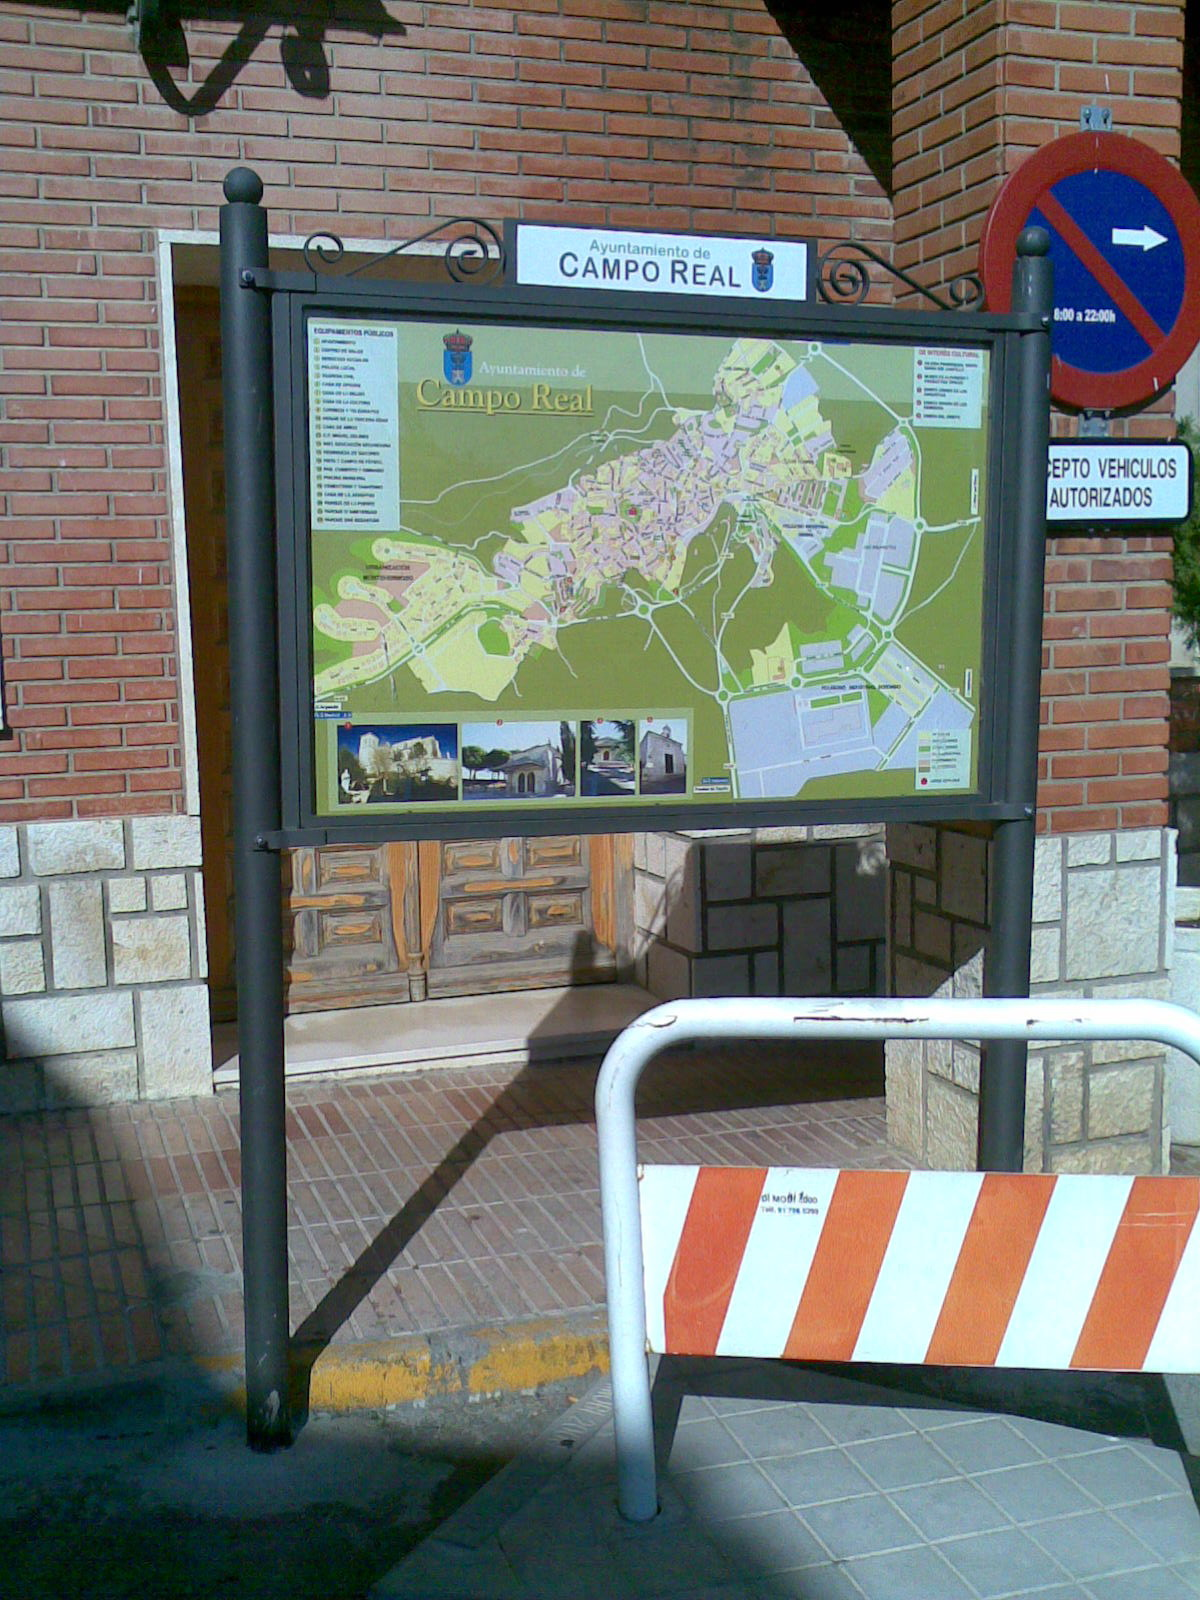 Cartel informativo de Campo Real (Madrid)